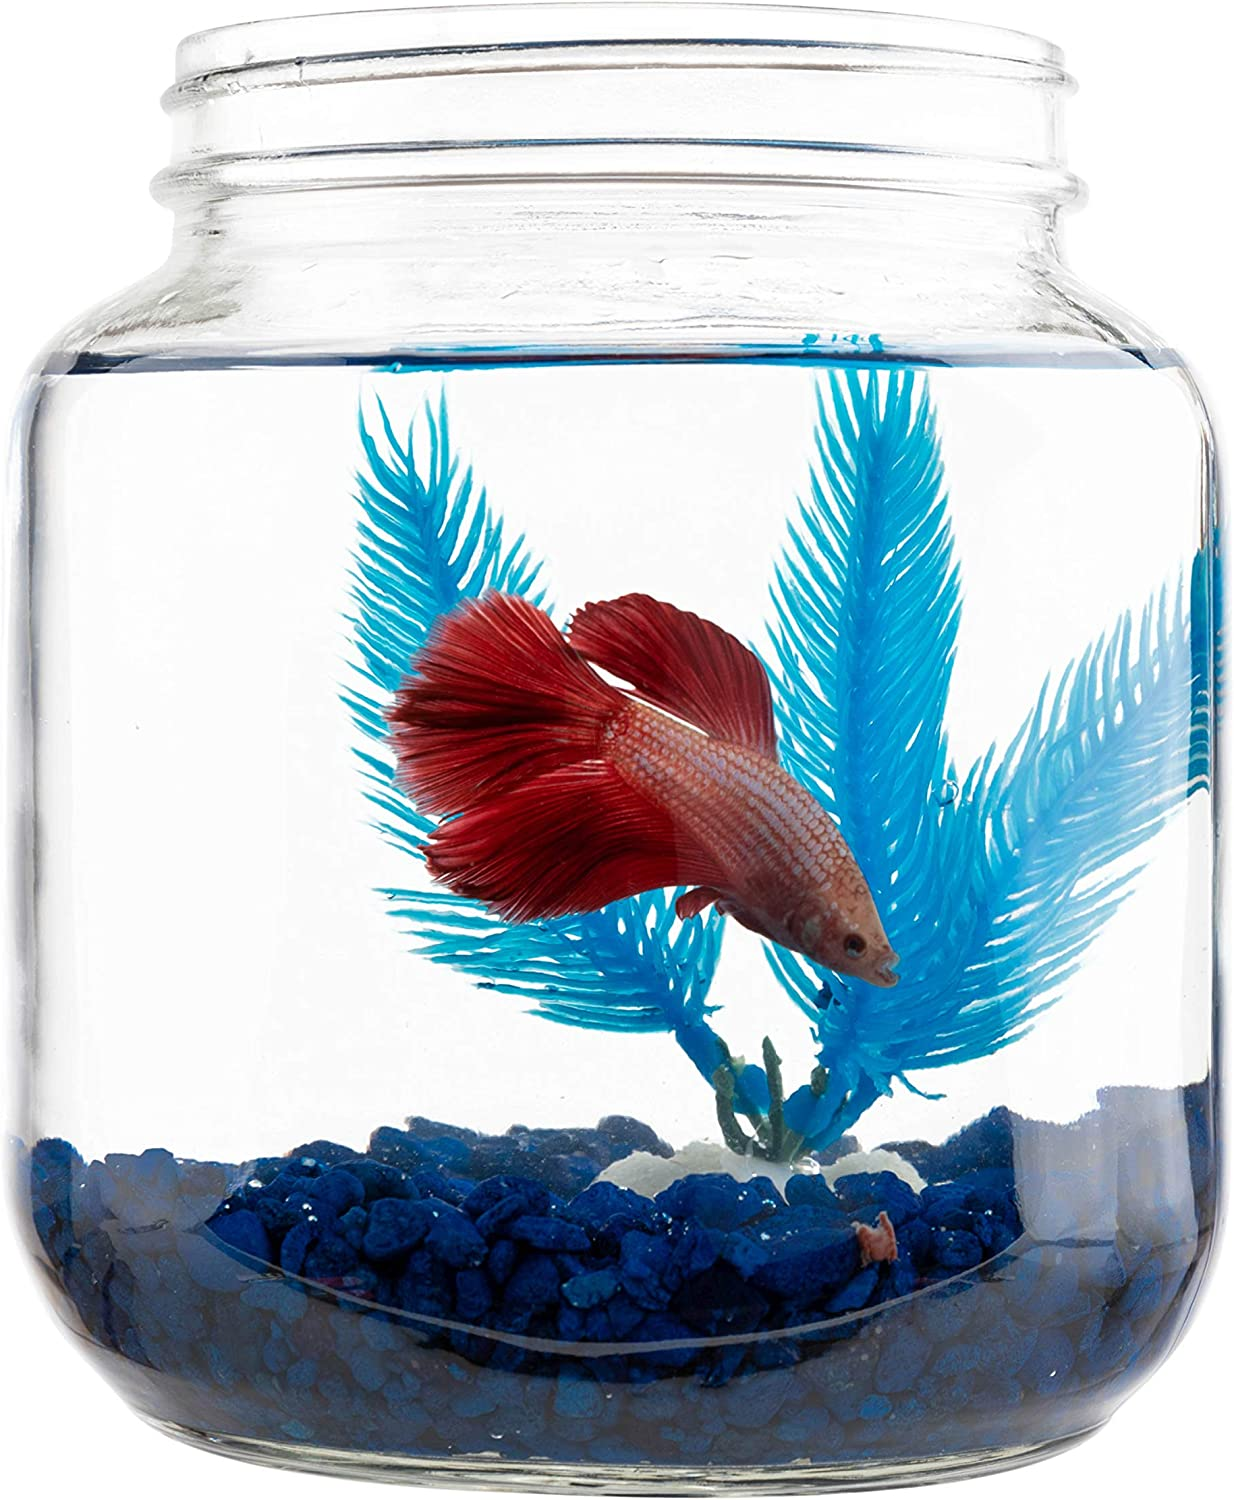 Decorative Glass Jar Betta Fish Bowl with Aquarium Gravel, Betta Fish Food and Rubber Plant - Half Gallon Betta Fish Tank with Wide Mouth (Fish not Included)